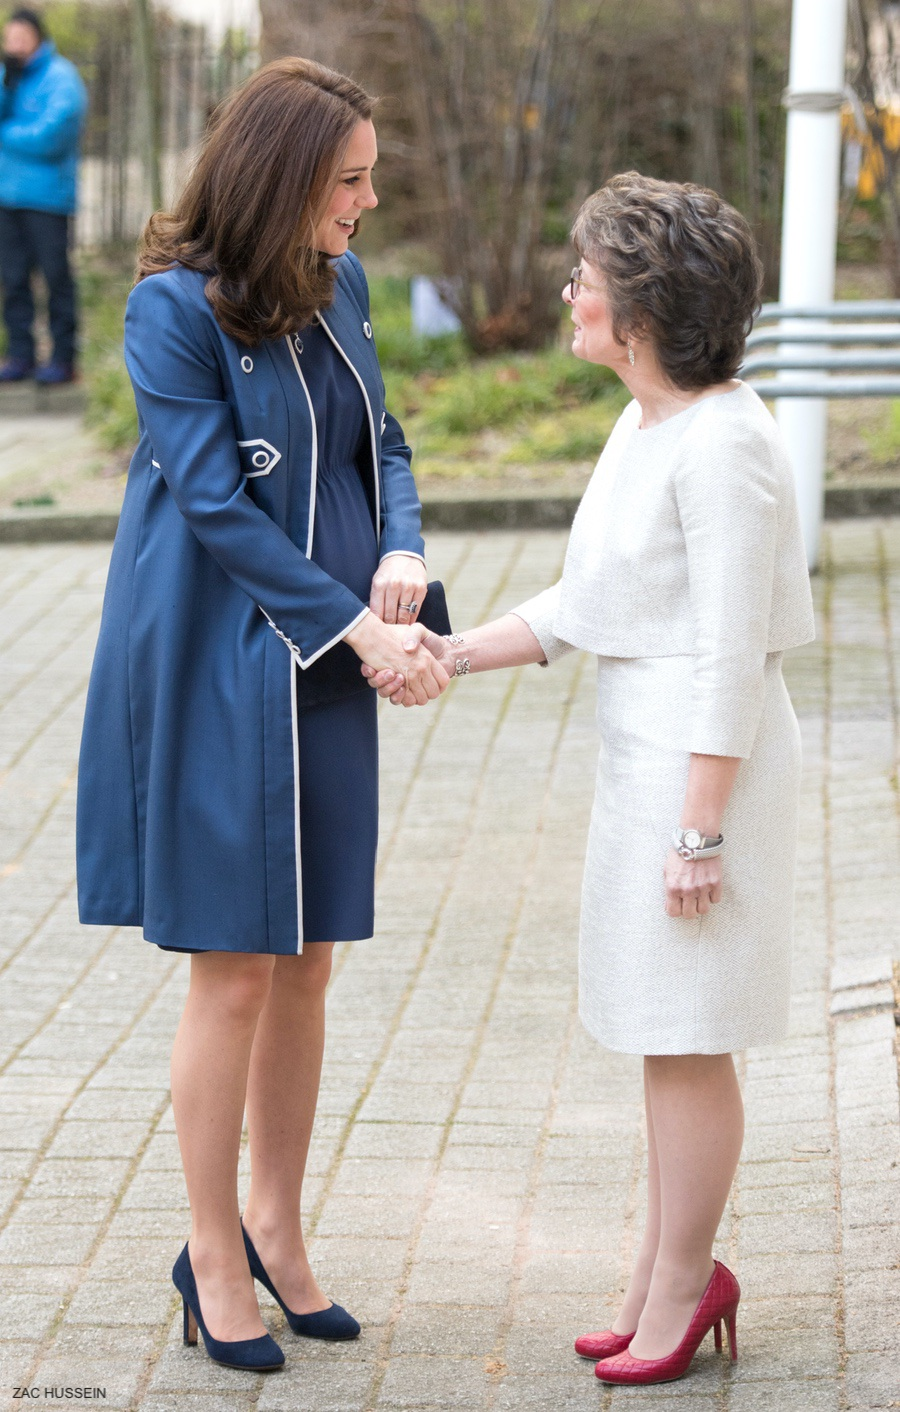 Pregnant Kate wearing a blue dress and jacket at the RCOG today